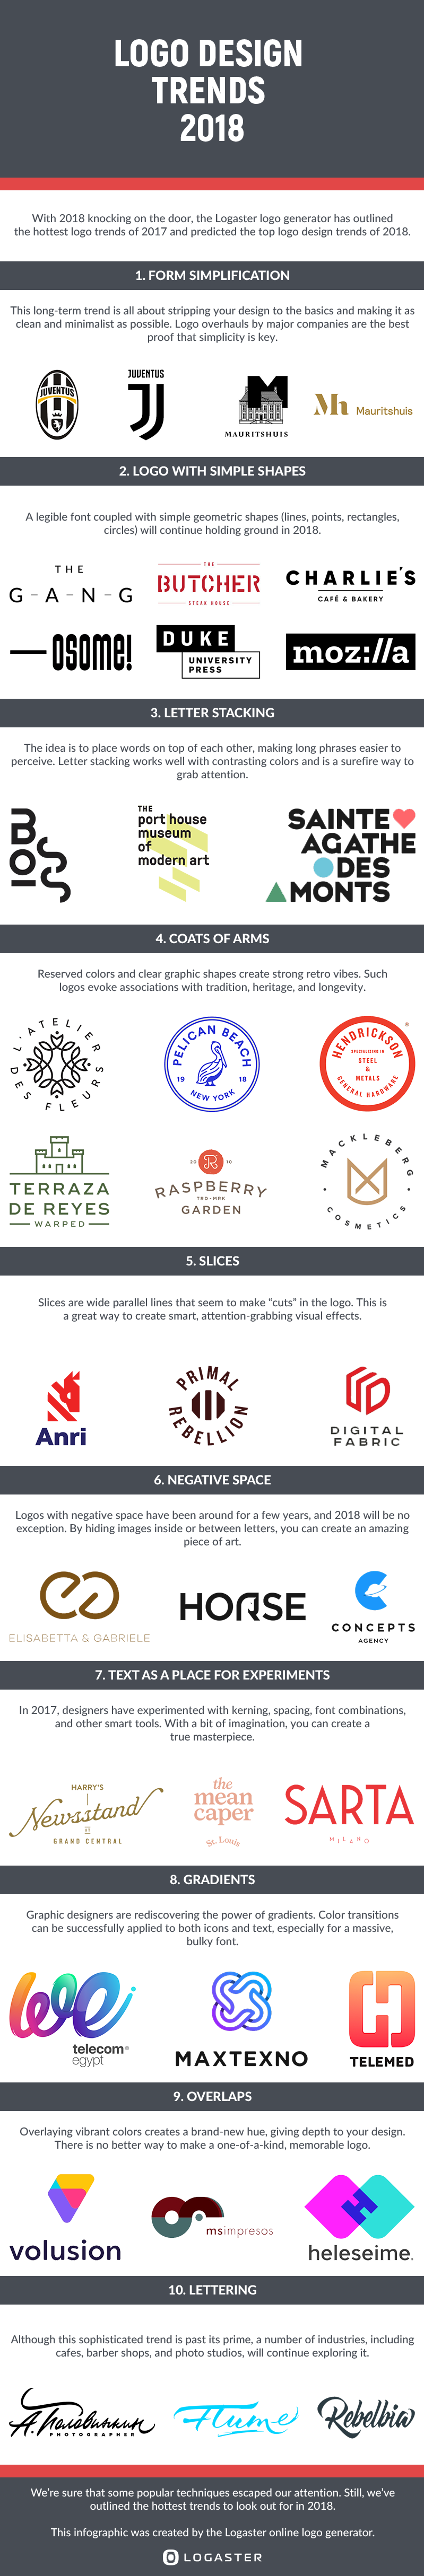 Check Out This Engaging Infographic On Logo Design Trends That Will Define 2018